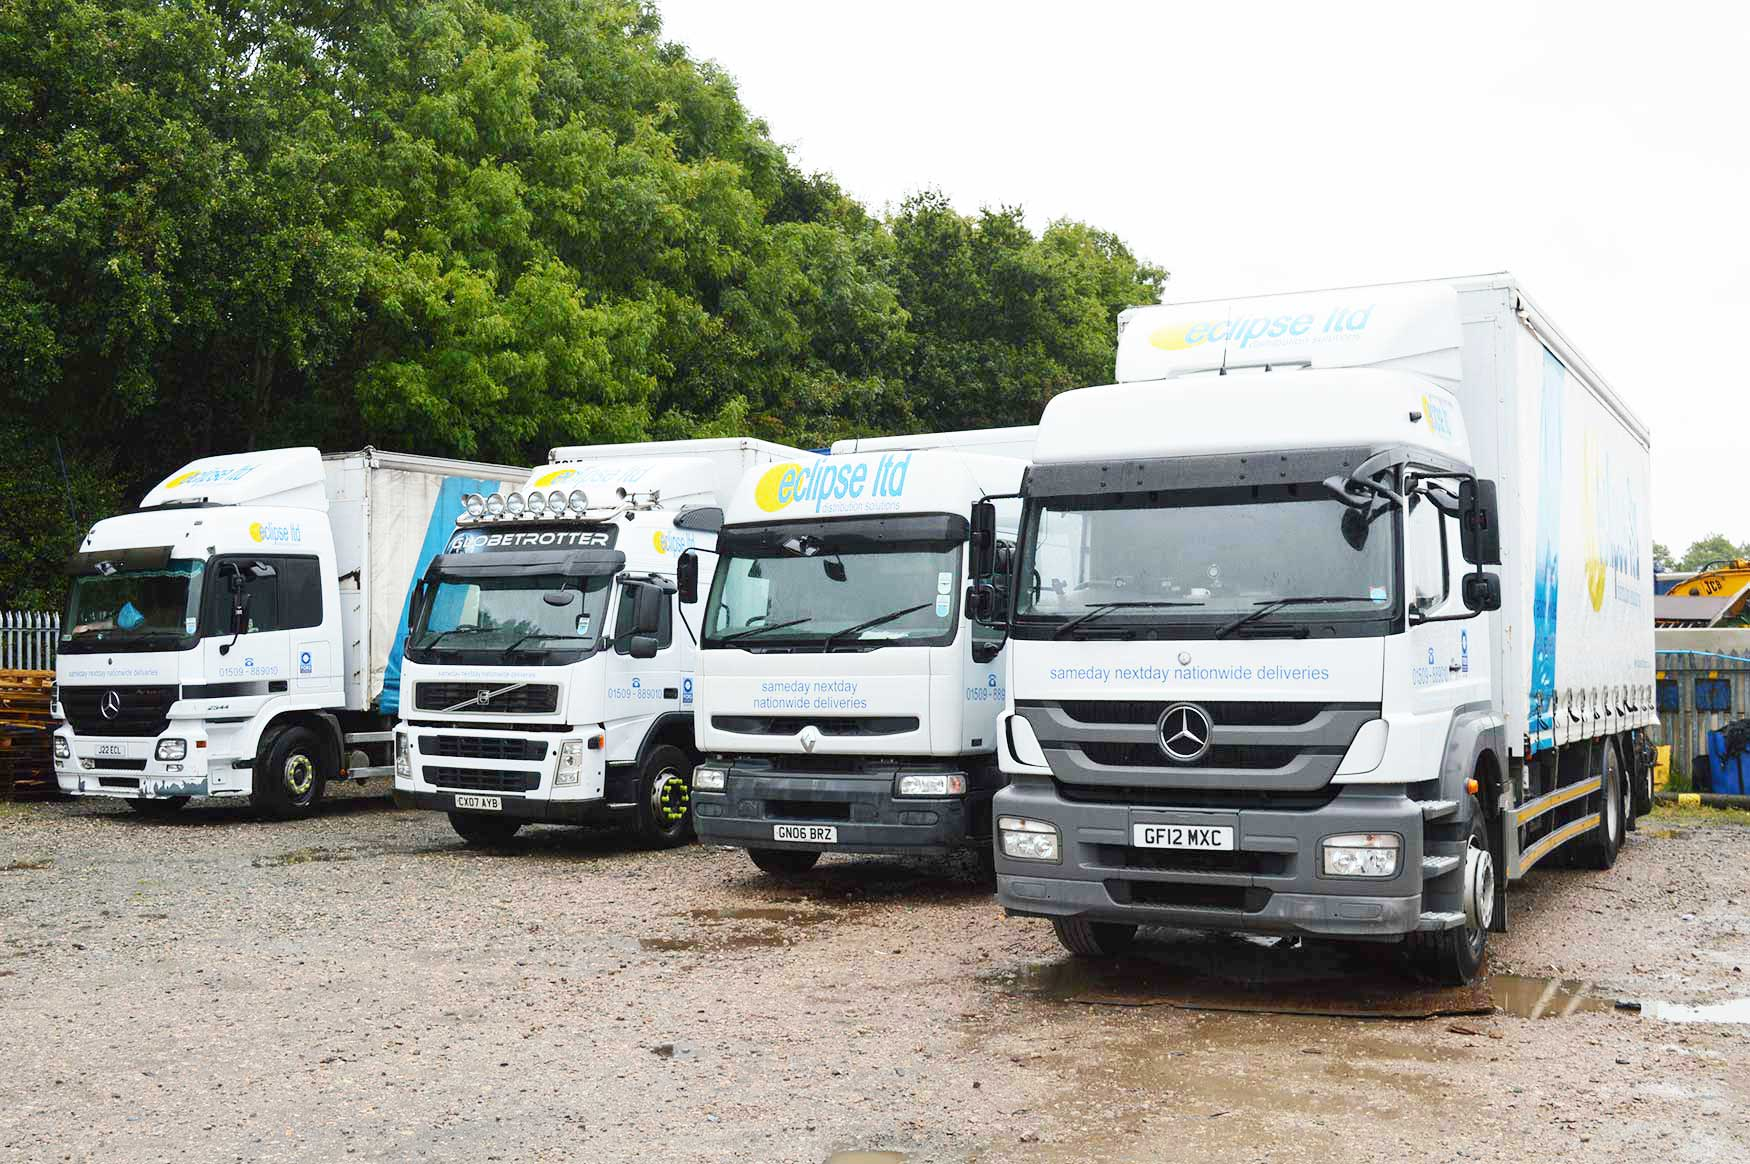 An image of four Eclipse Distribution Solutions Ltd delivery lorries that deliver parcels nationwide.